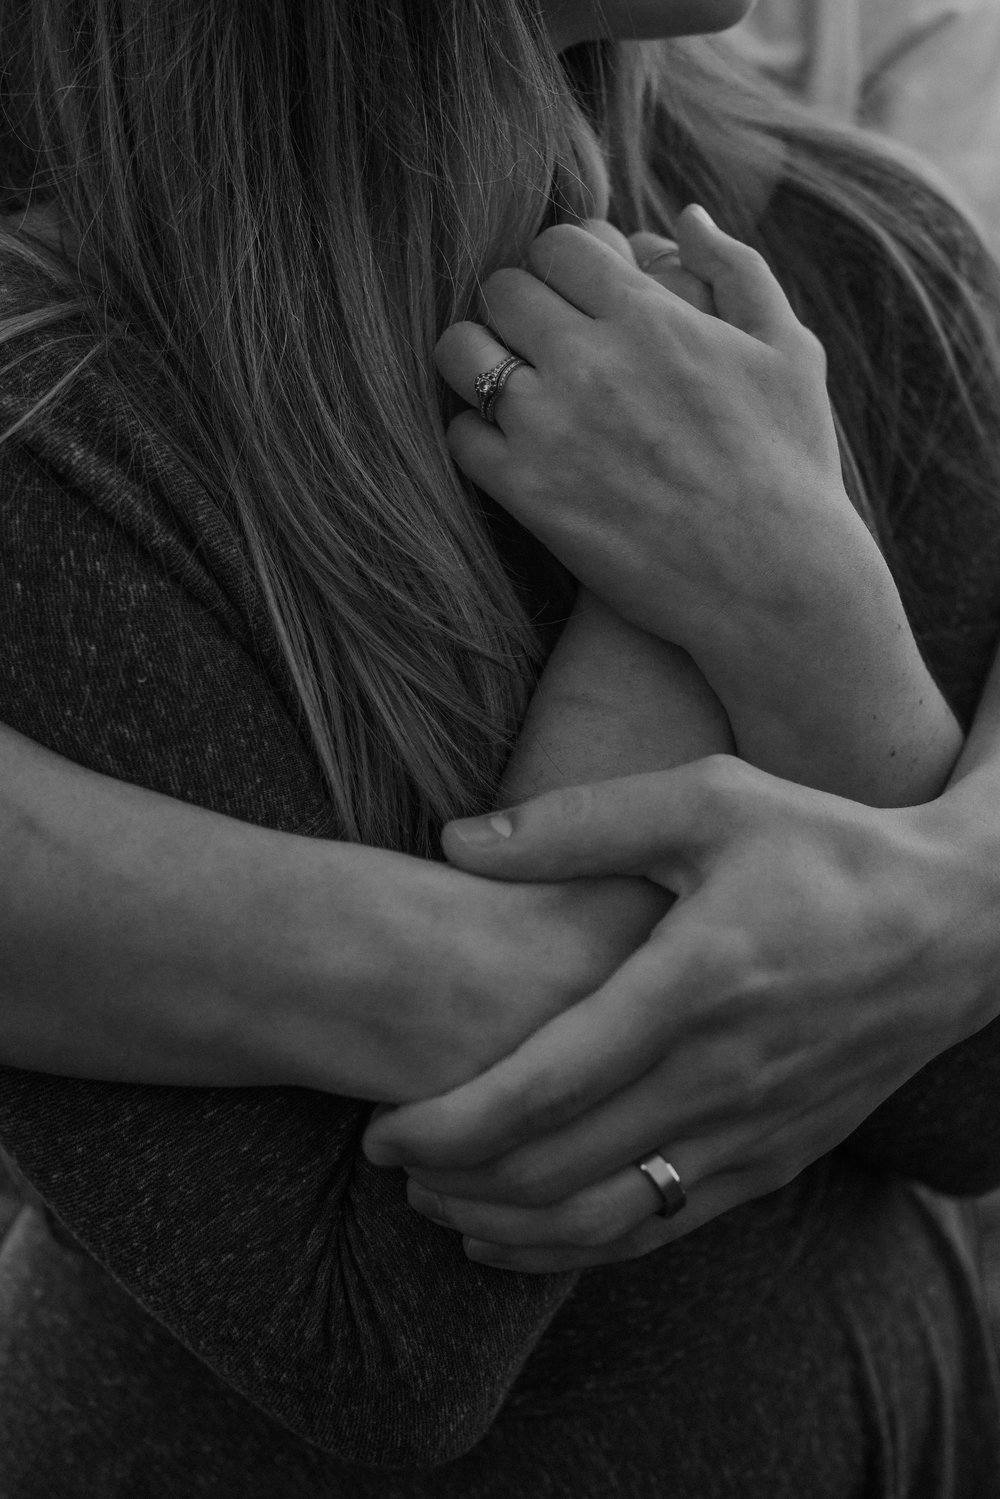 Arms wrapped around each other.